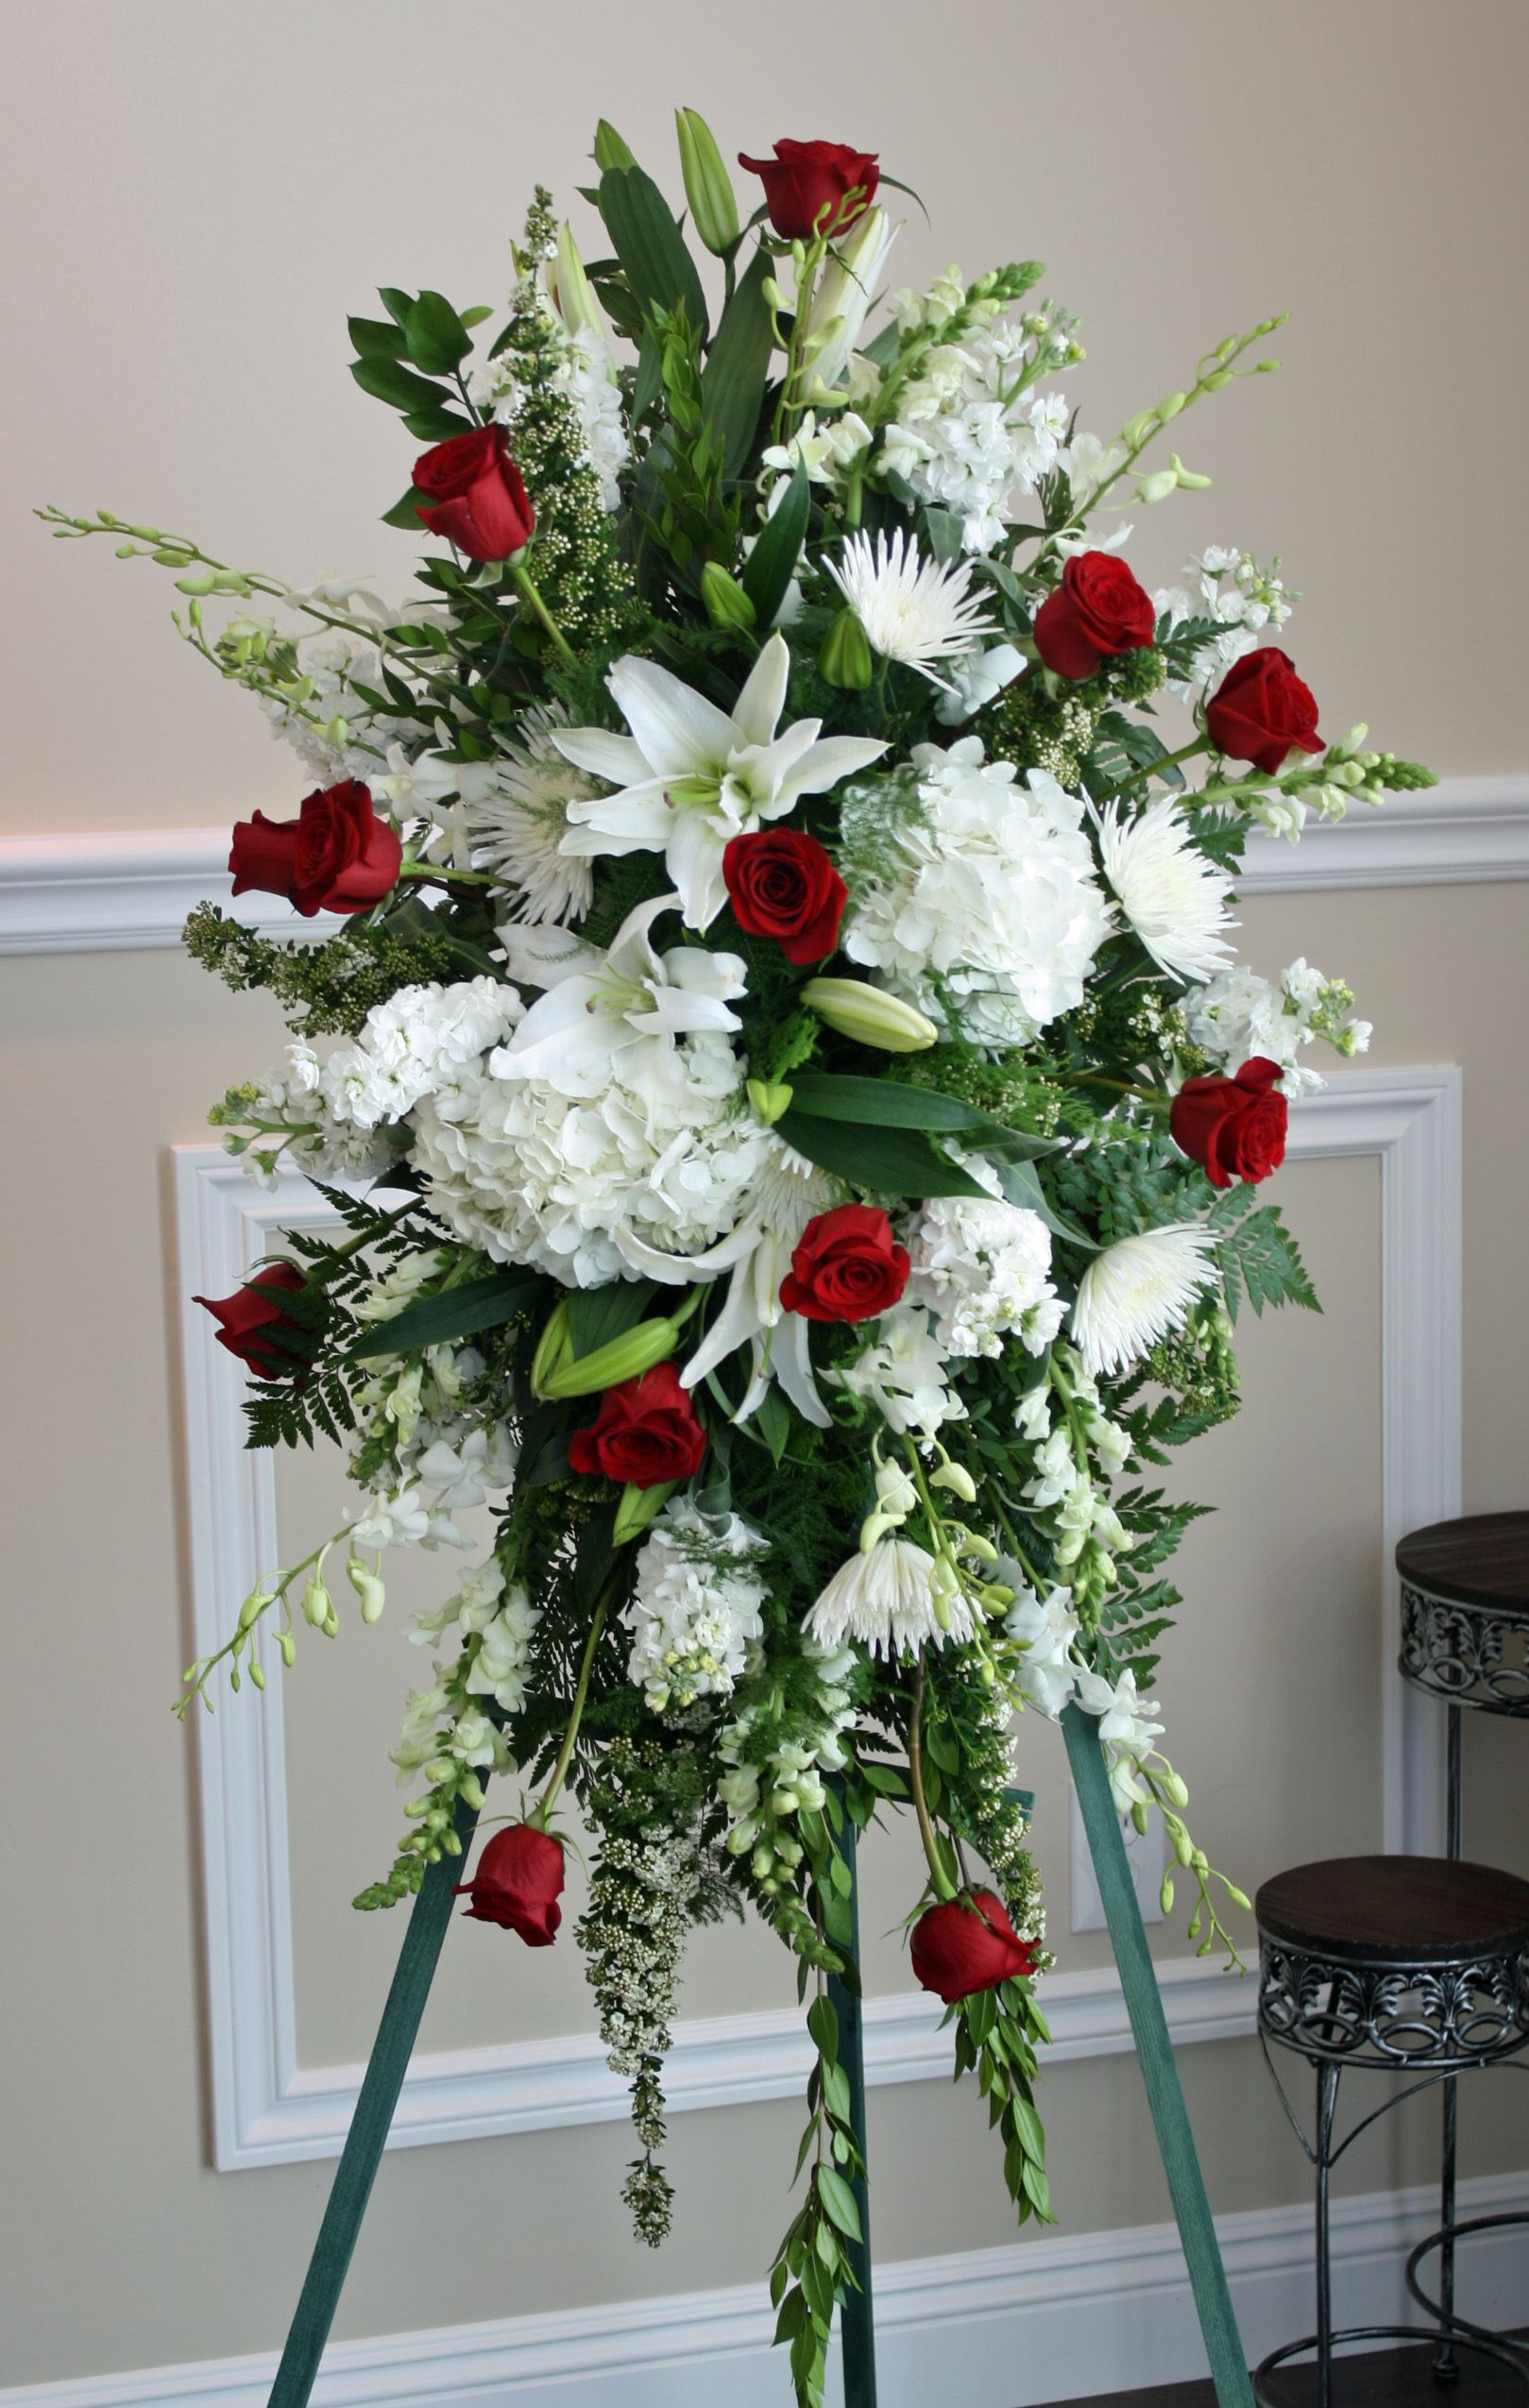 Sympathy flowers funeral flower arrangements unique for A arrangement florist flowers